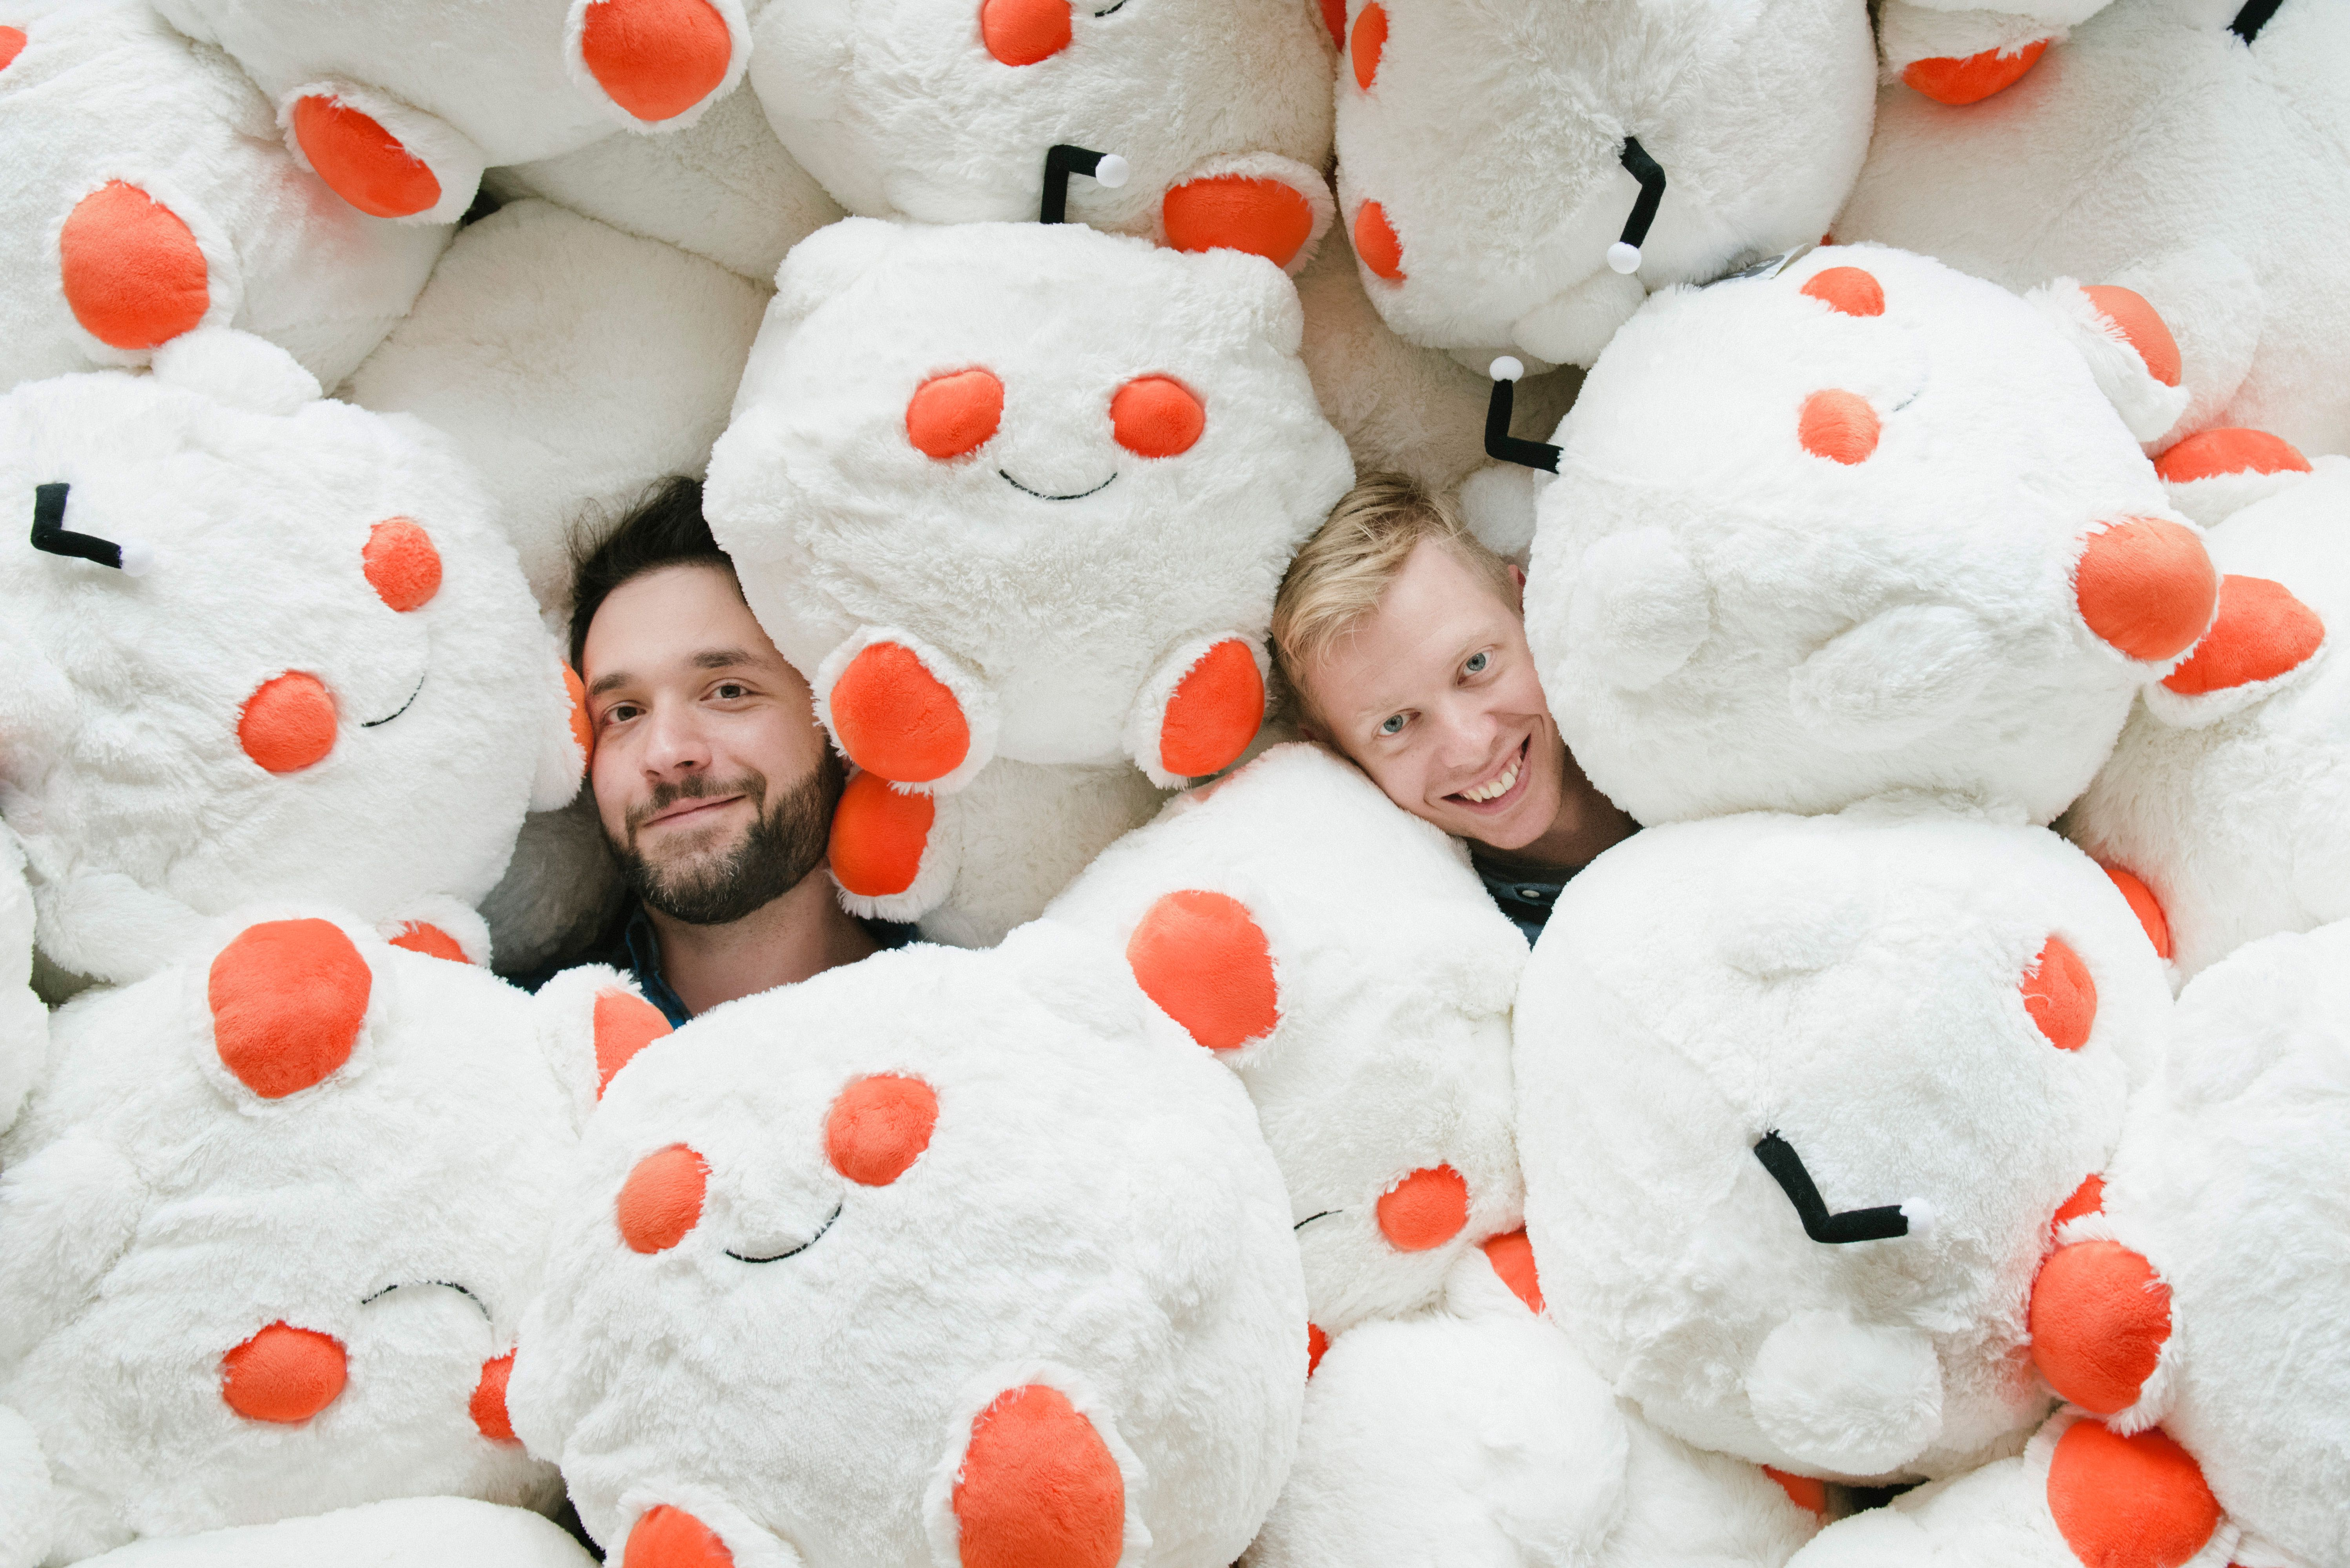 reddit's nsfw content: what you need to know